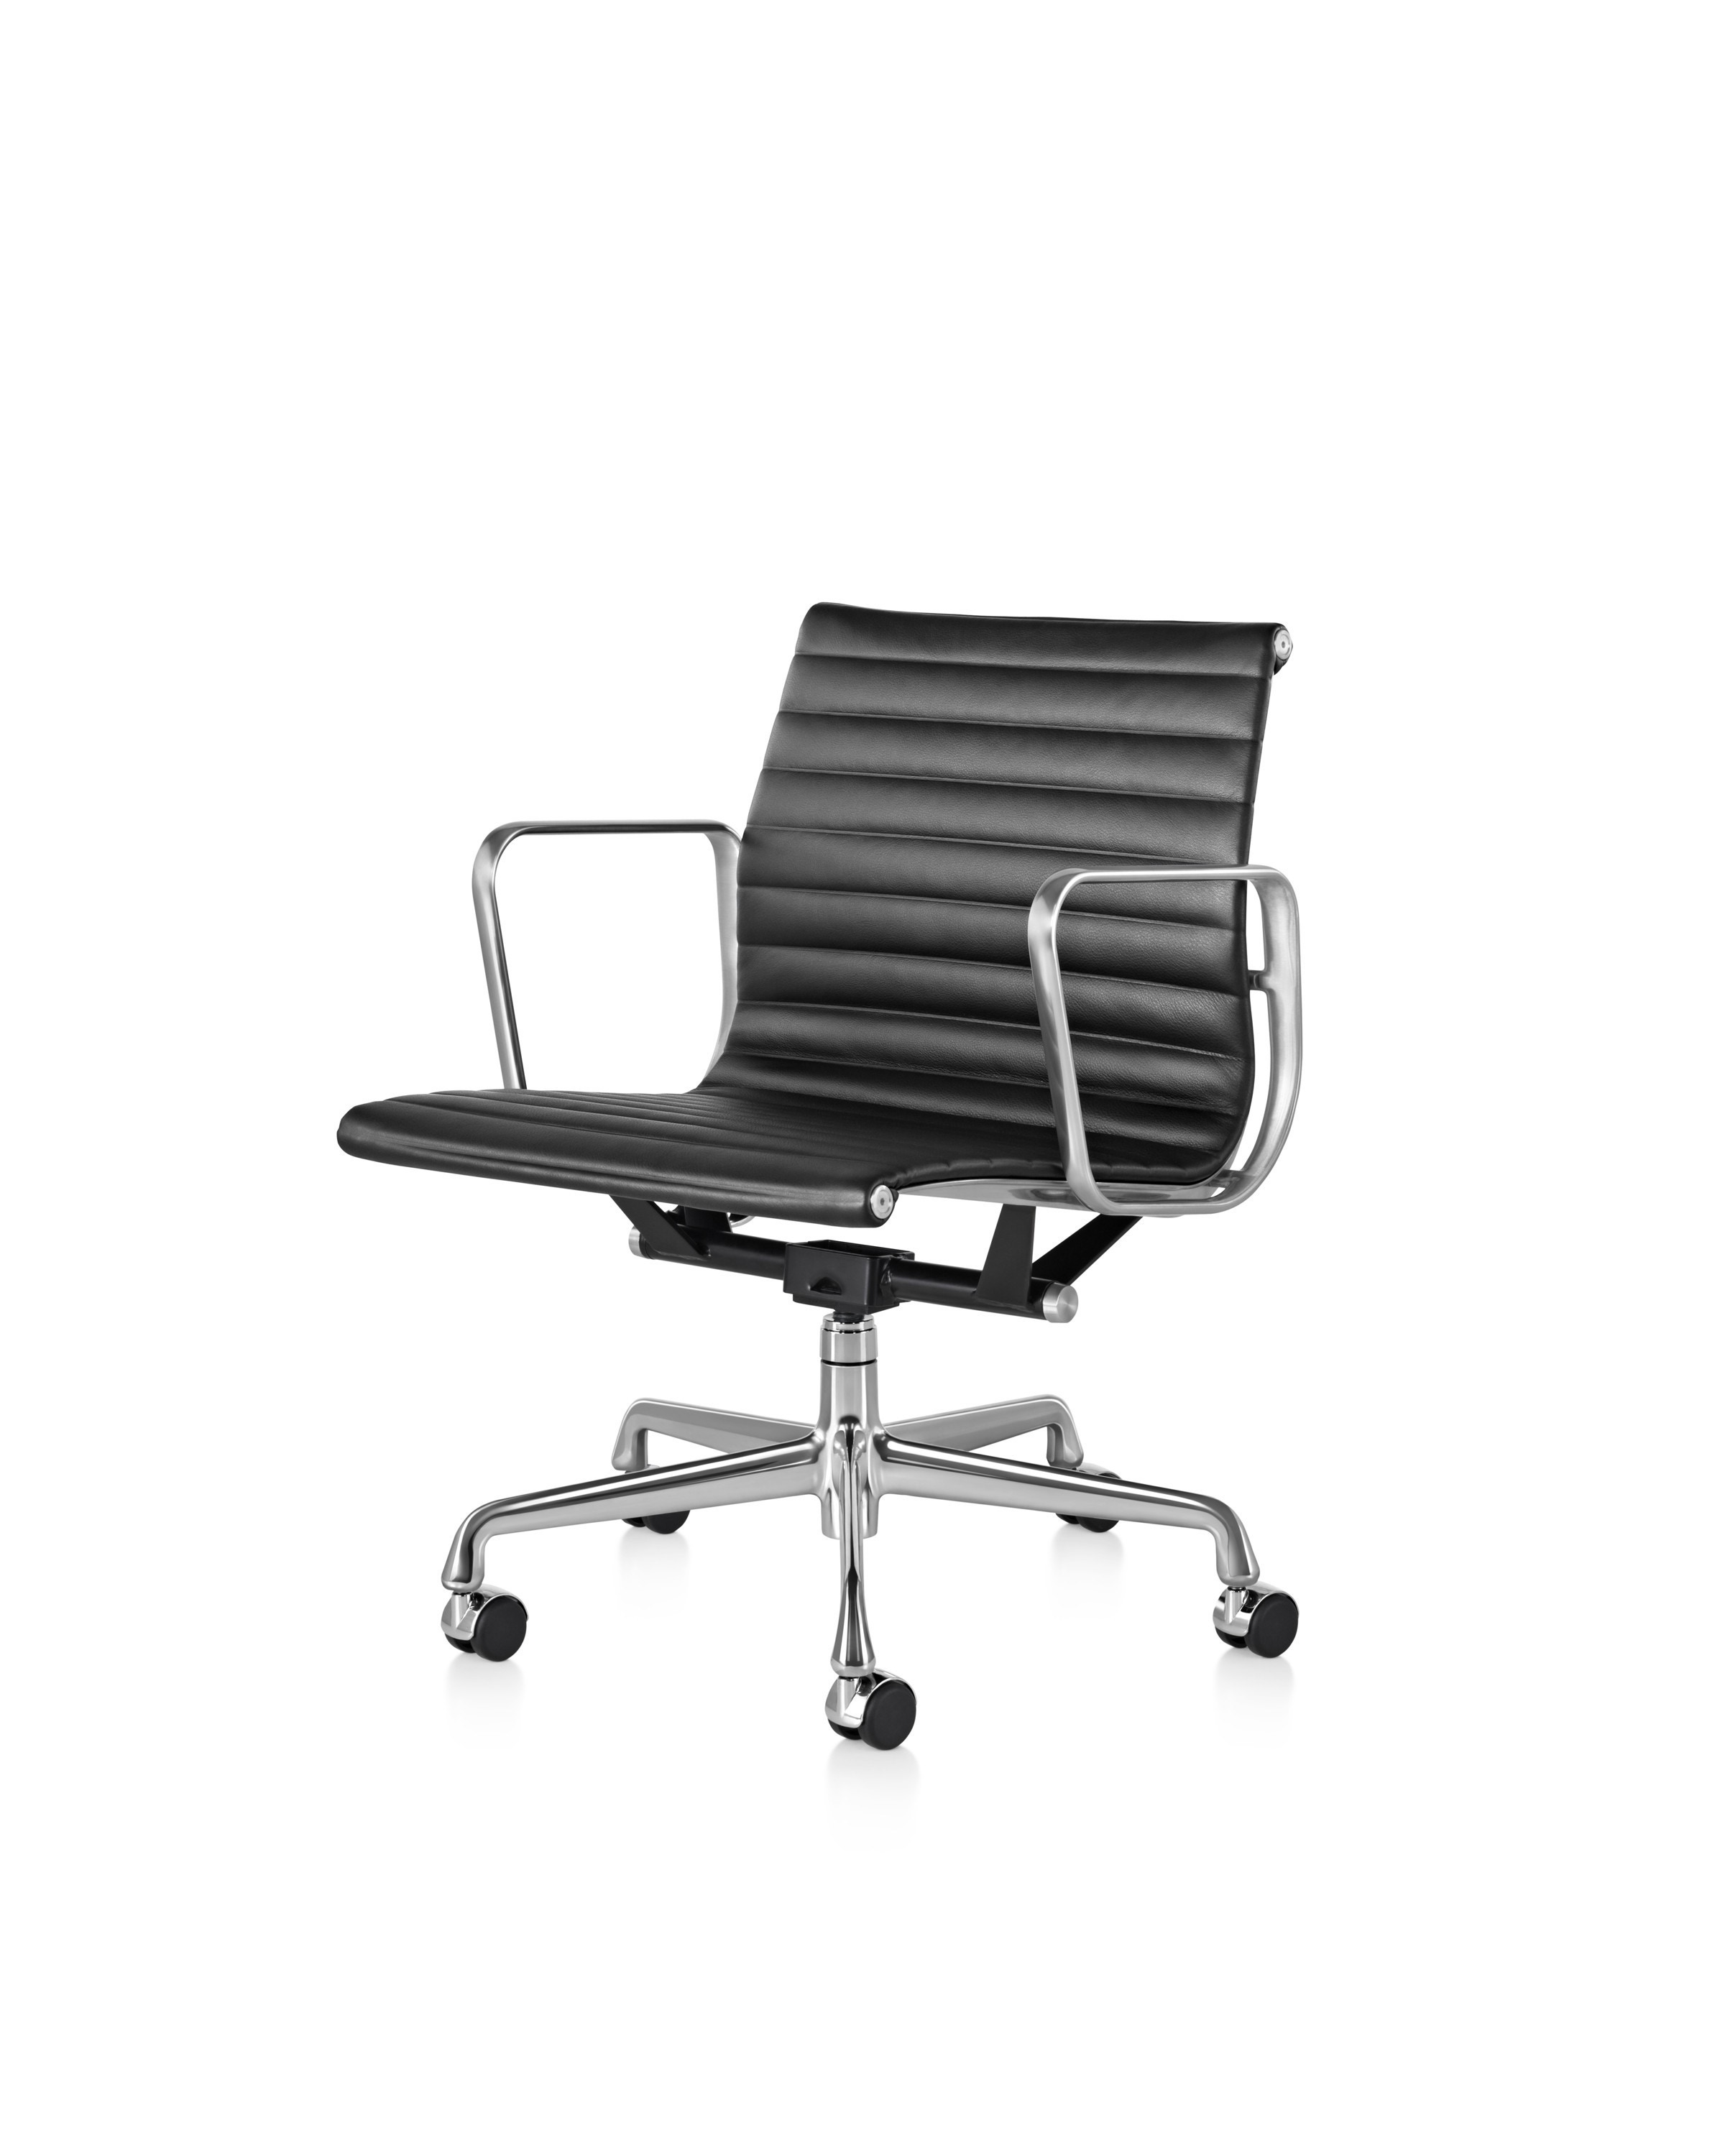 herman miller eames aluminum group management chair ForHerman Miller Eames Aluminum Group Management Chair